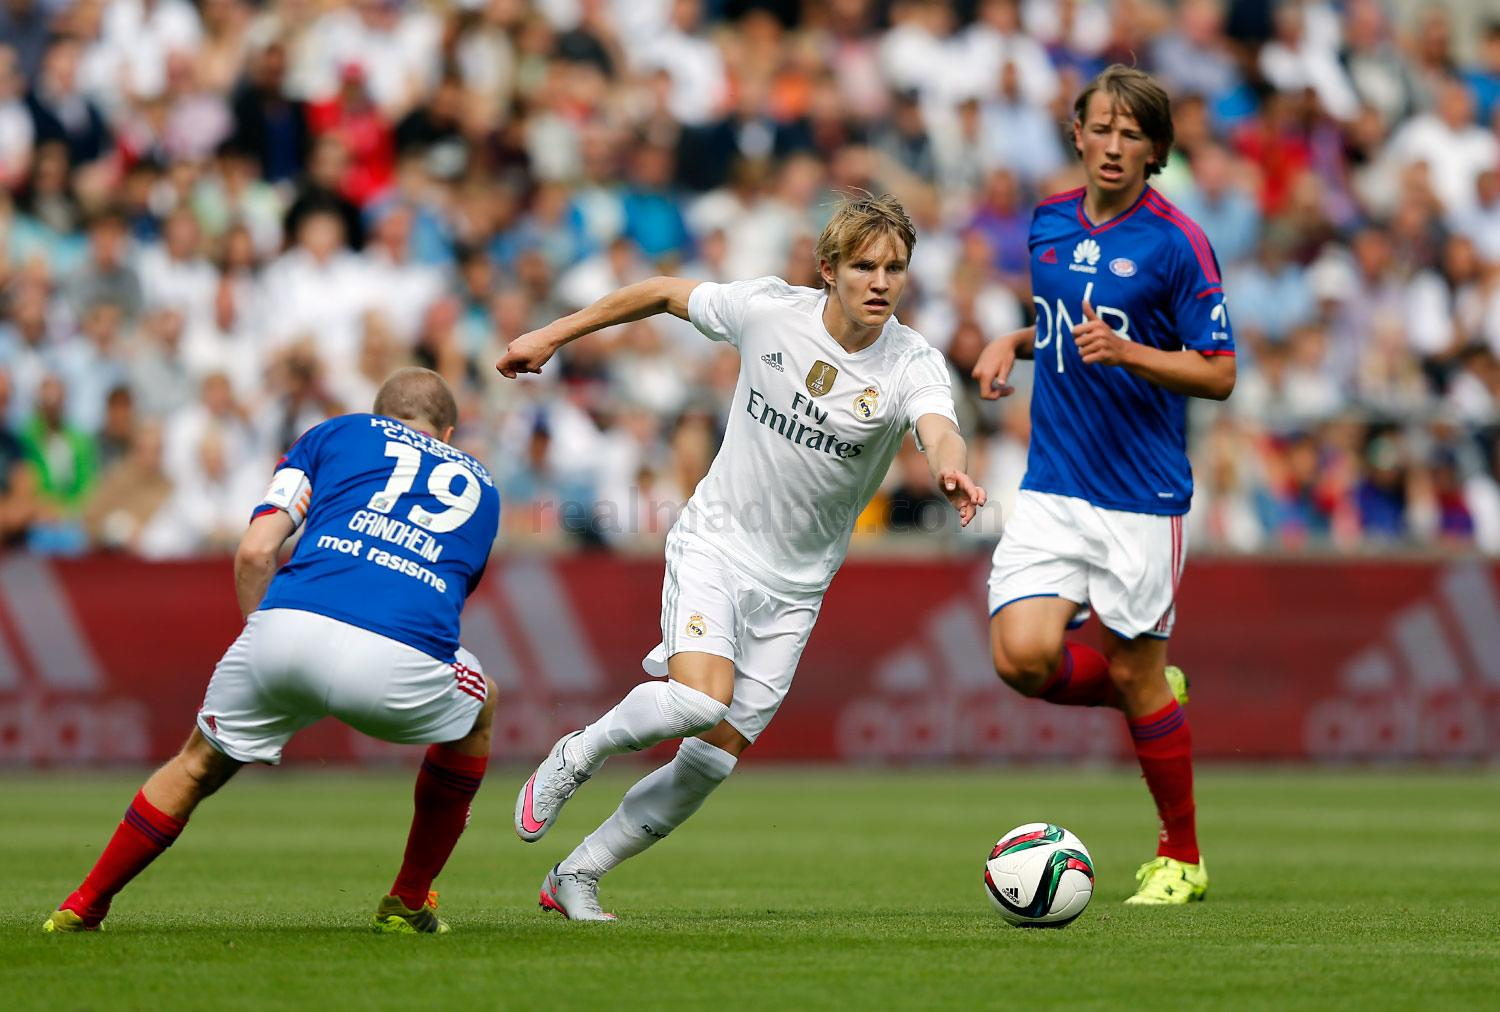 Real Madrid - Valerenga - Real Madrid - 09-08-2015